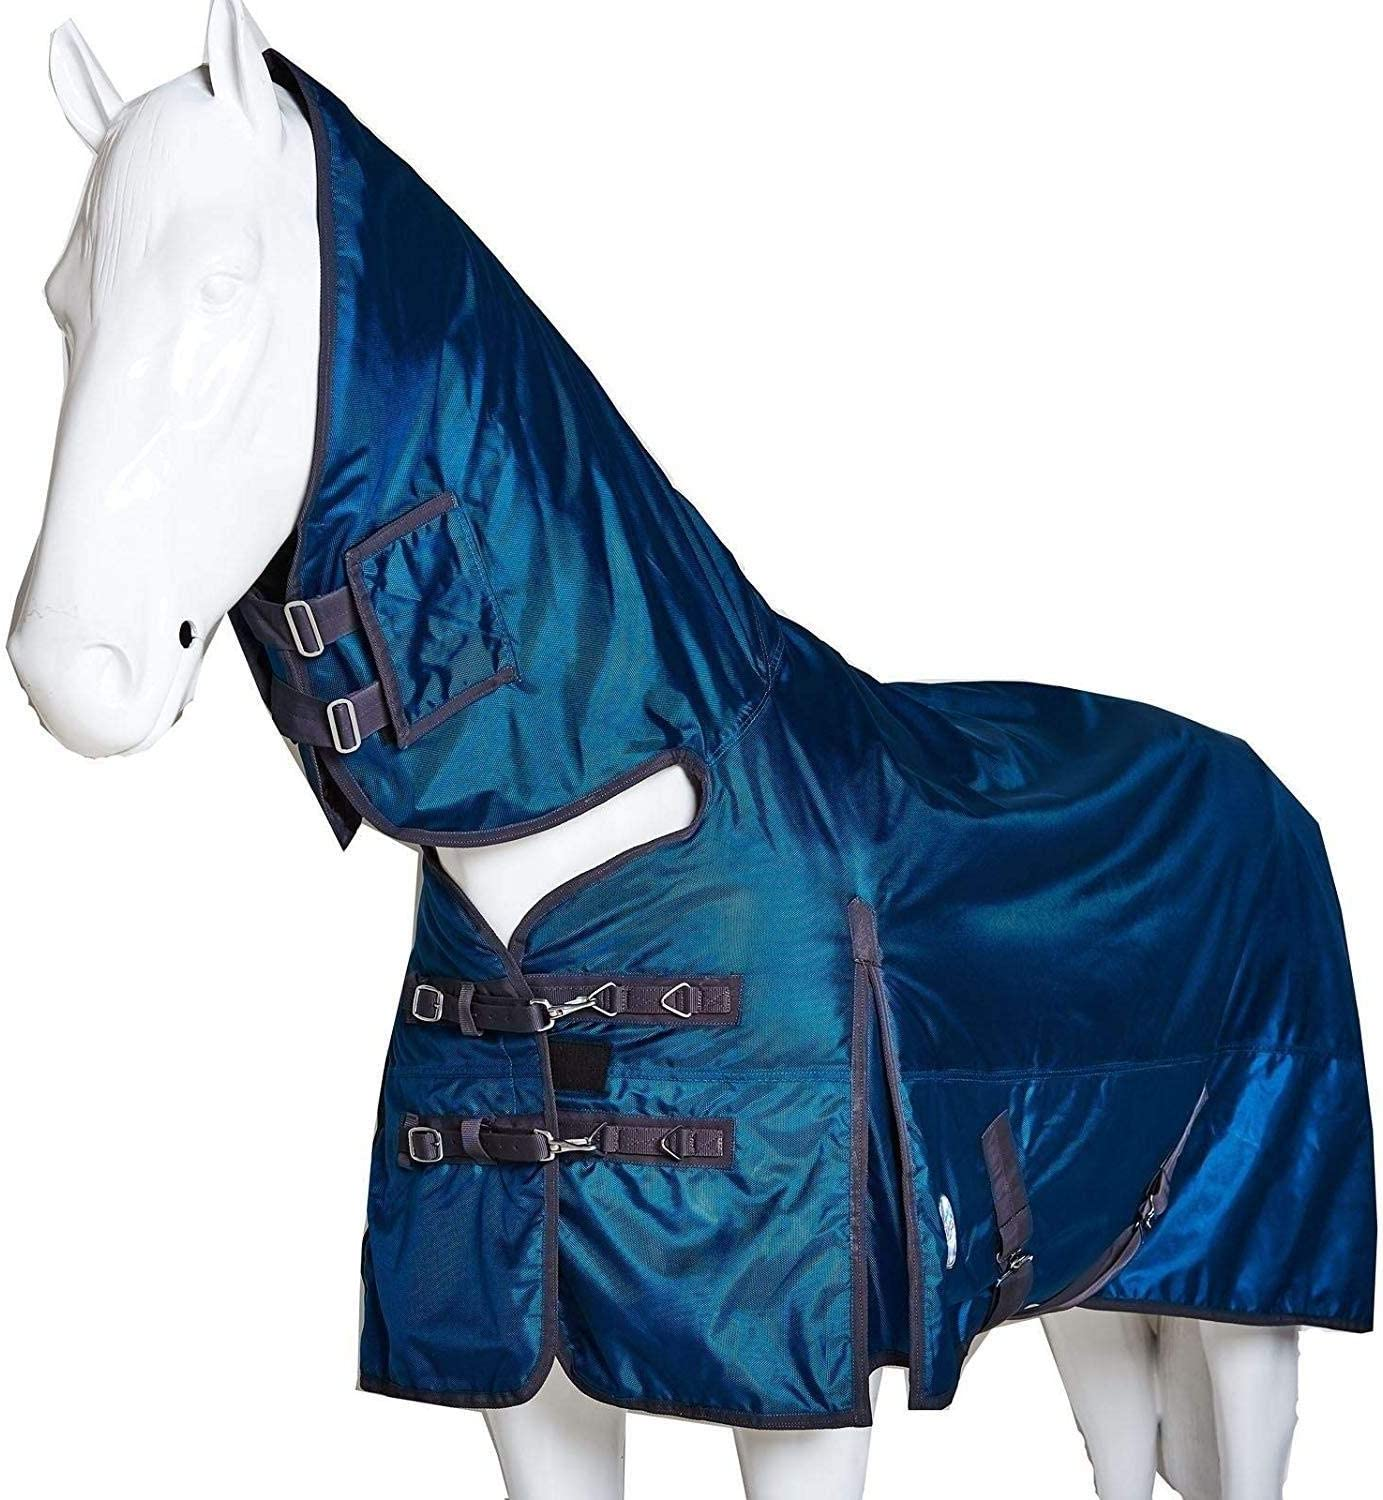 Horse Pony Turnout Rug Light Weight Combo Waterproof 100g 1680D Full Fixed Neck